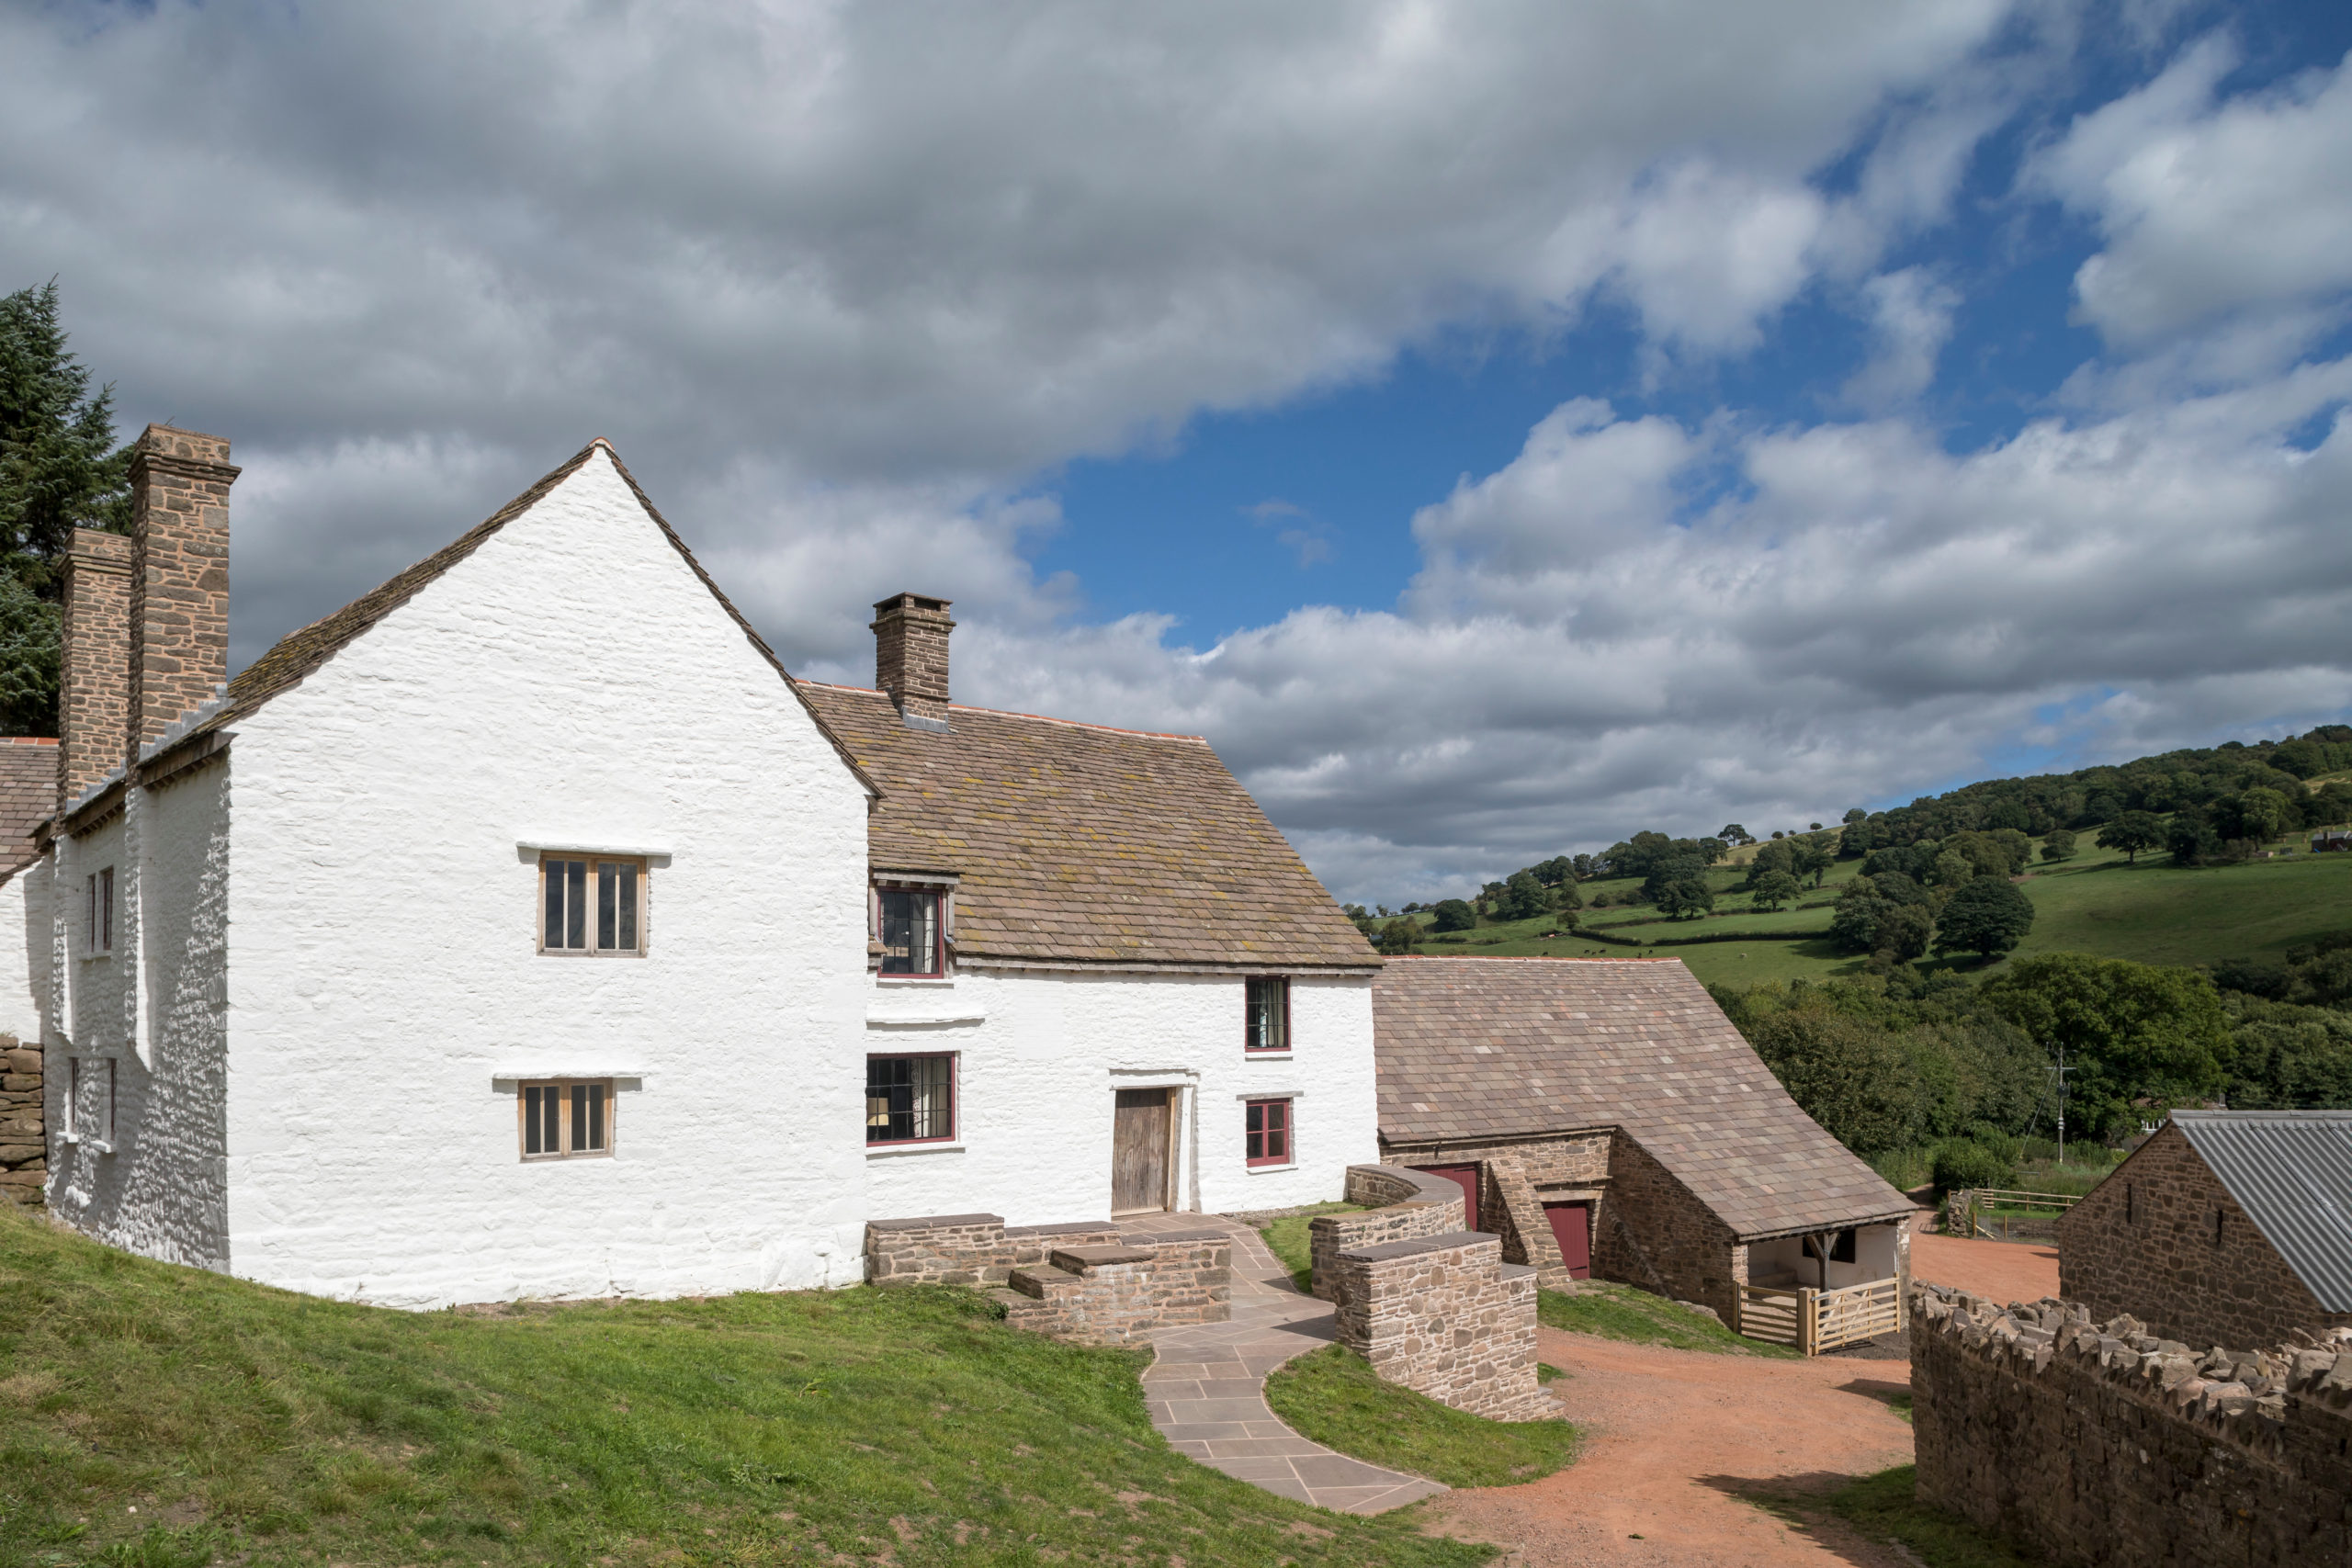 Completed heritage project at Llwyn Celyn, Abergavenny